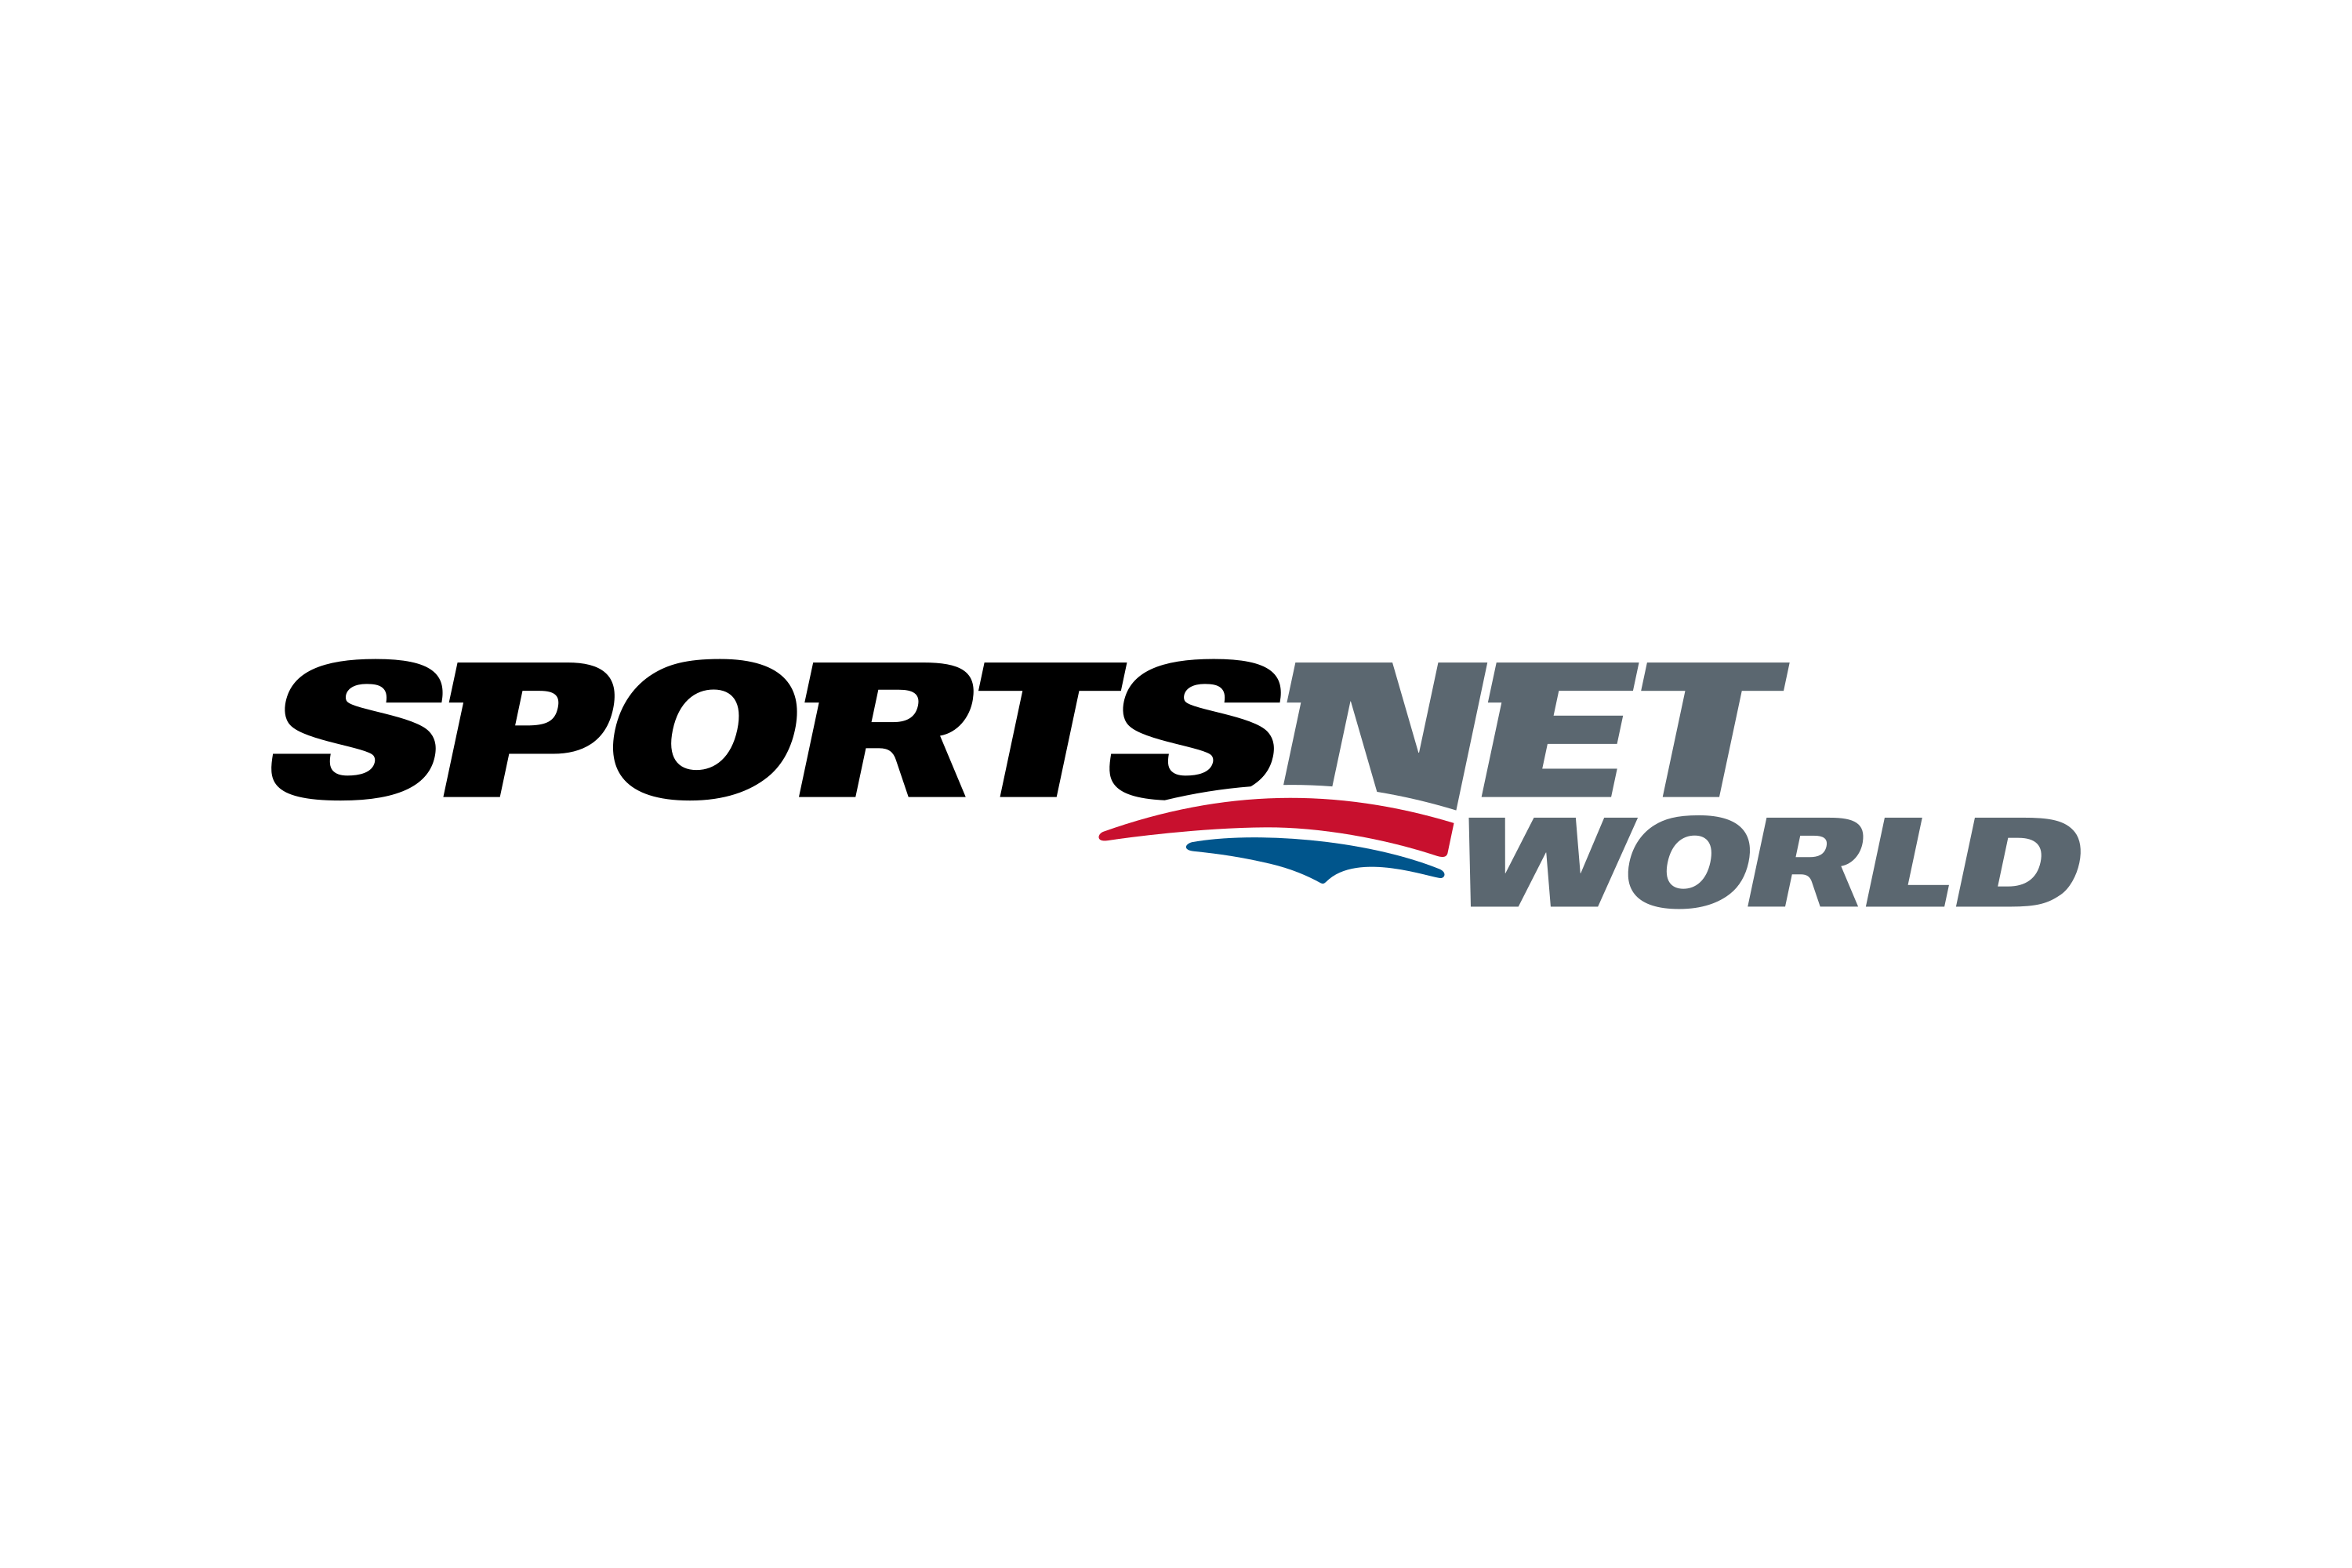 Download Sportsnet World Logo In Svg Vector Or Png File Format Logo Wine